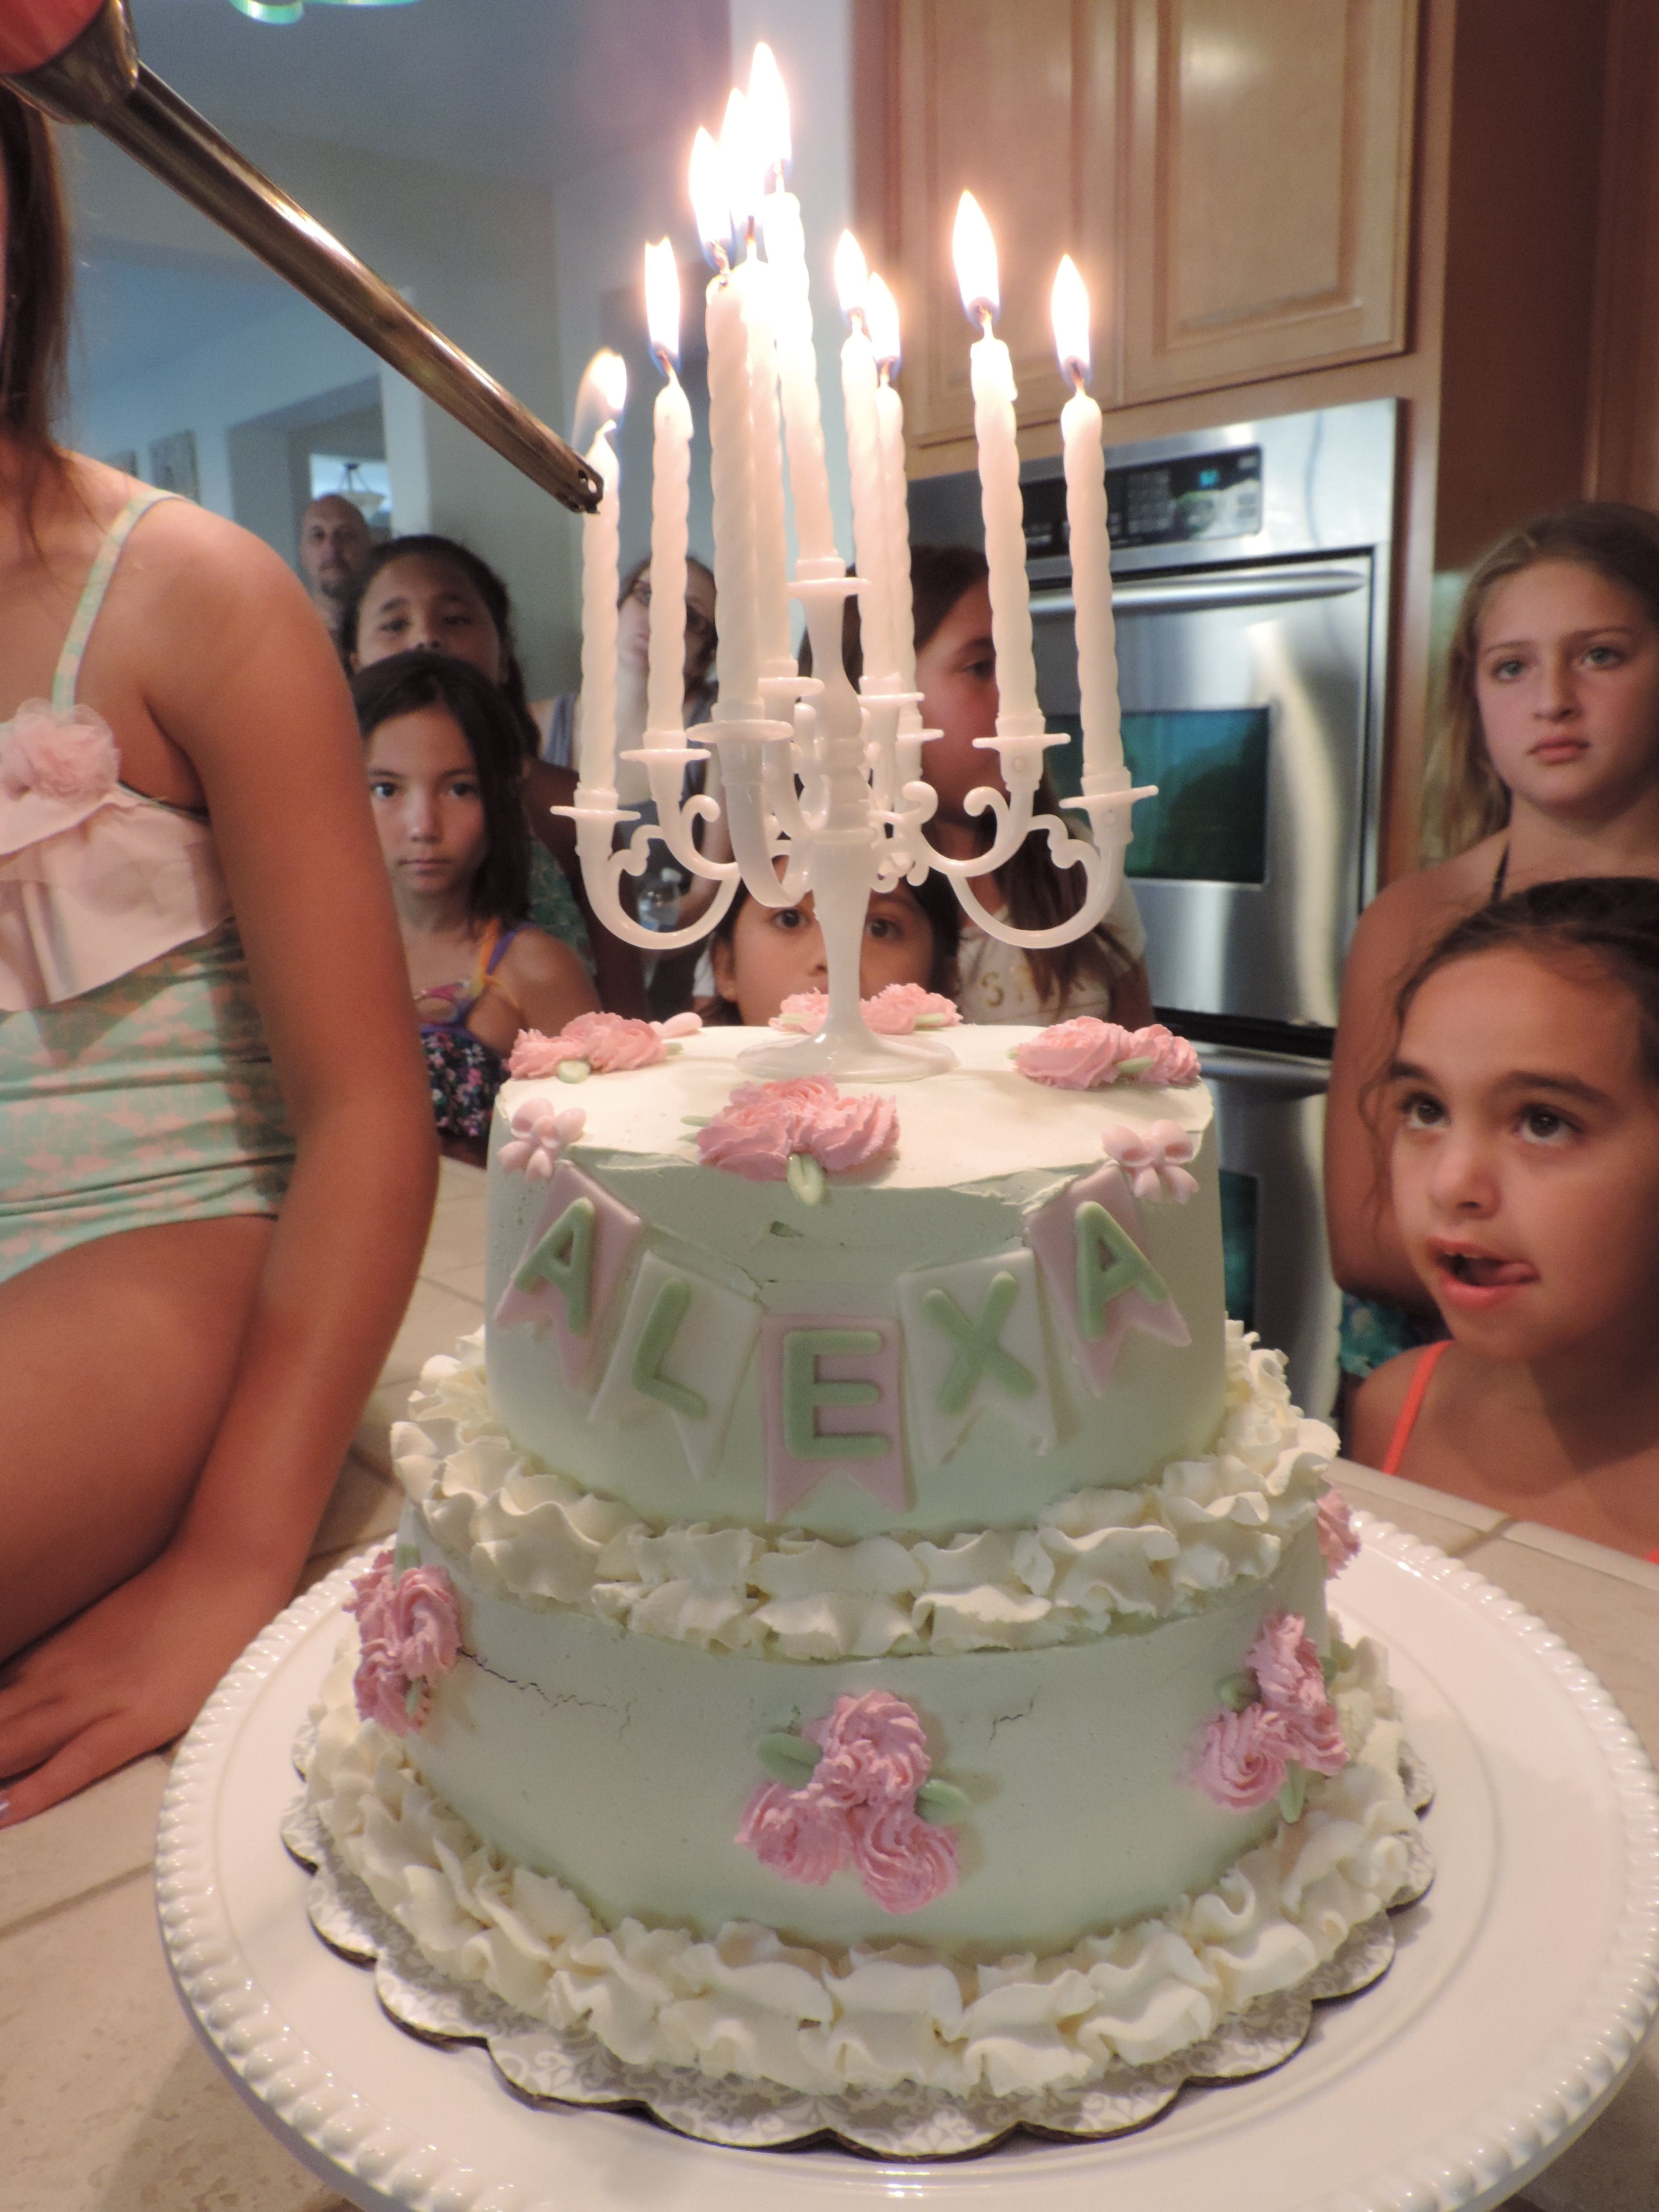 Alexas Spa Birthday Cake With Candelabra Topper White Strawberry Filling And Non Dairy Whipped Frosting